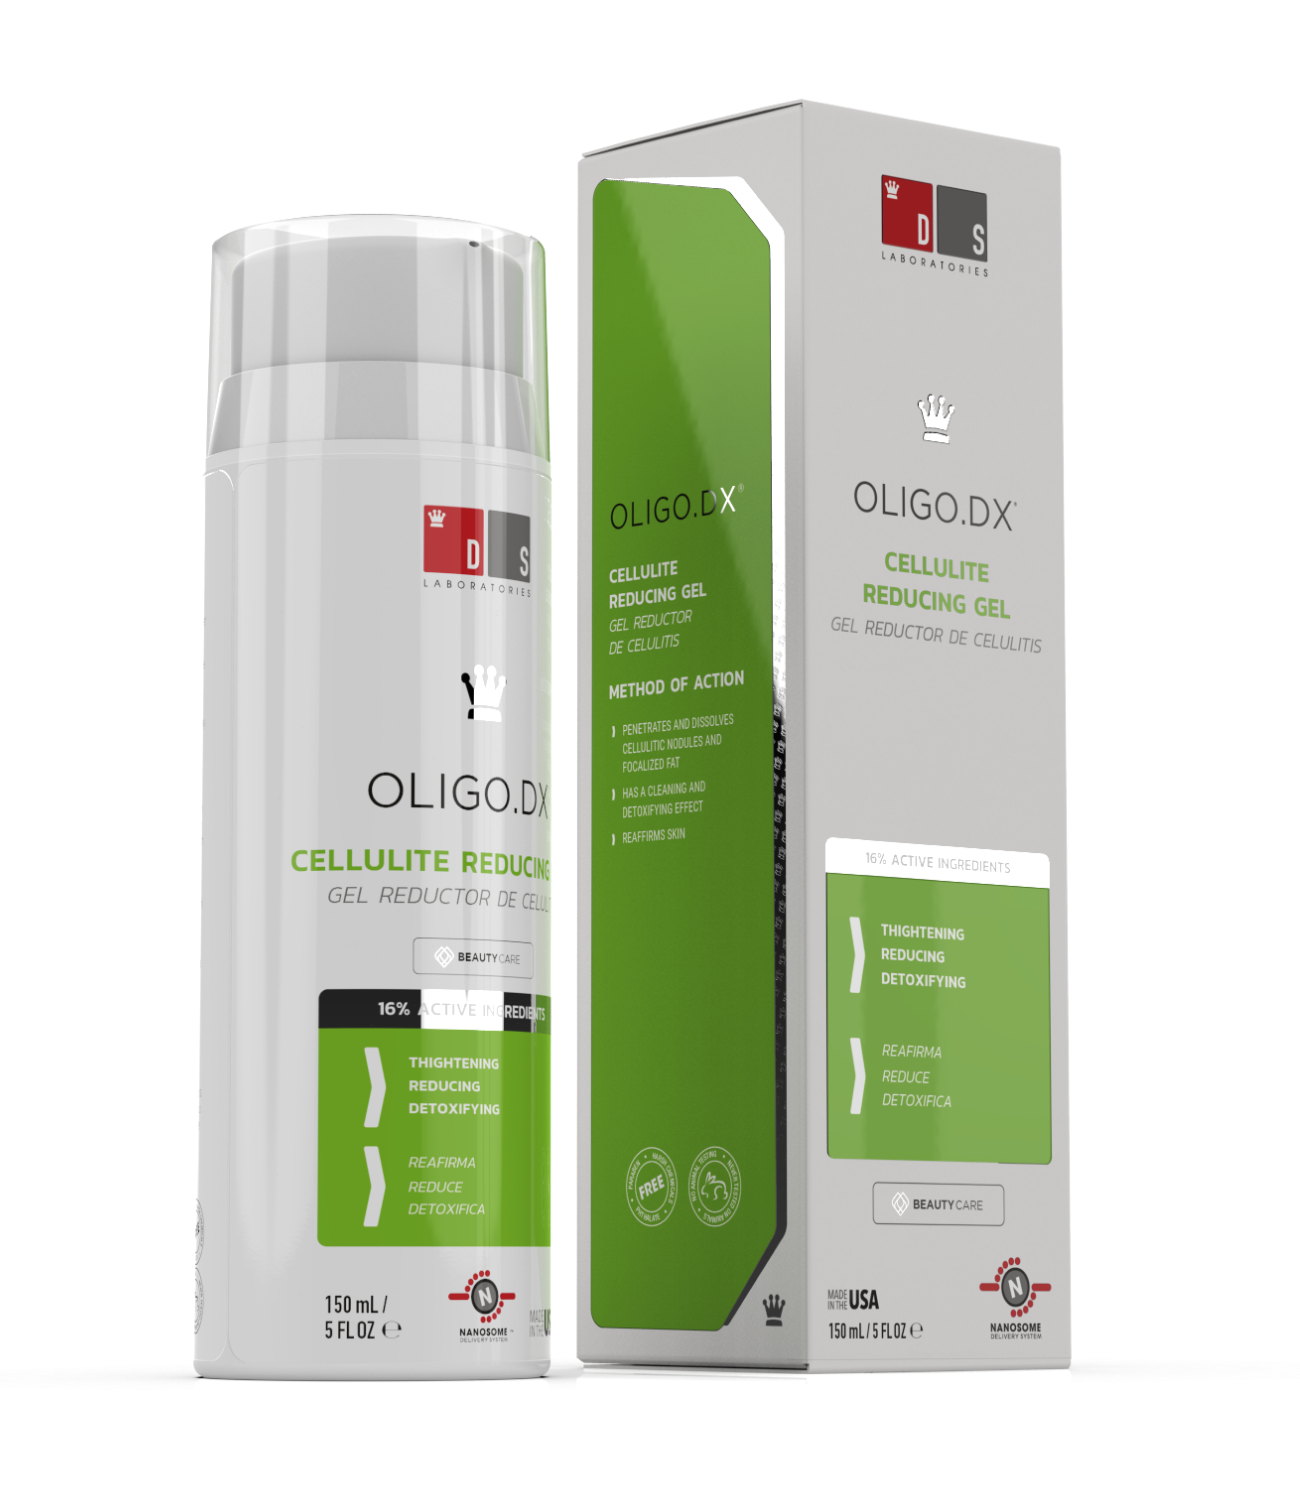 Oligo.DX | Cellulite Reducing Gel